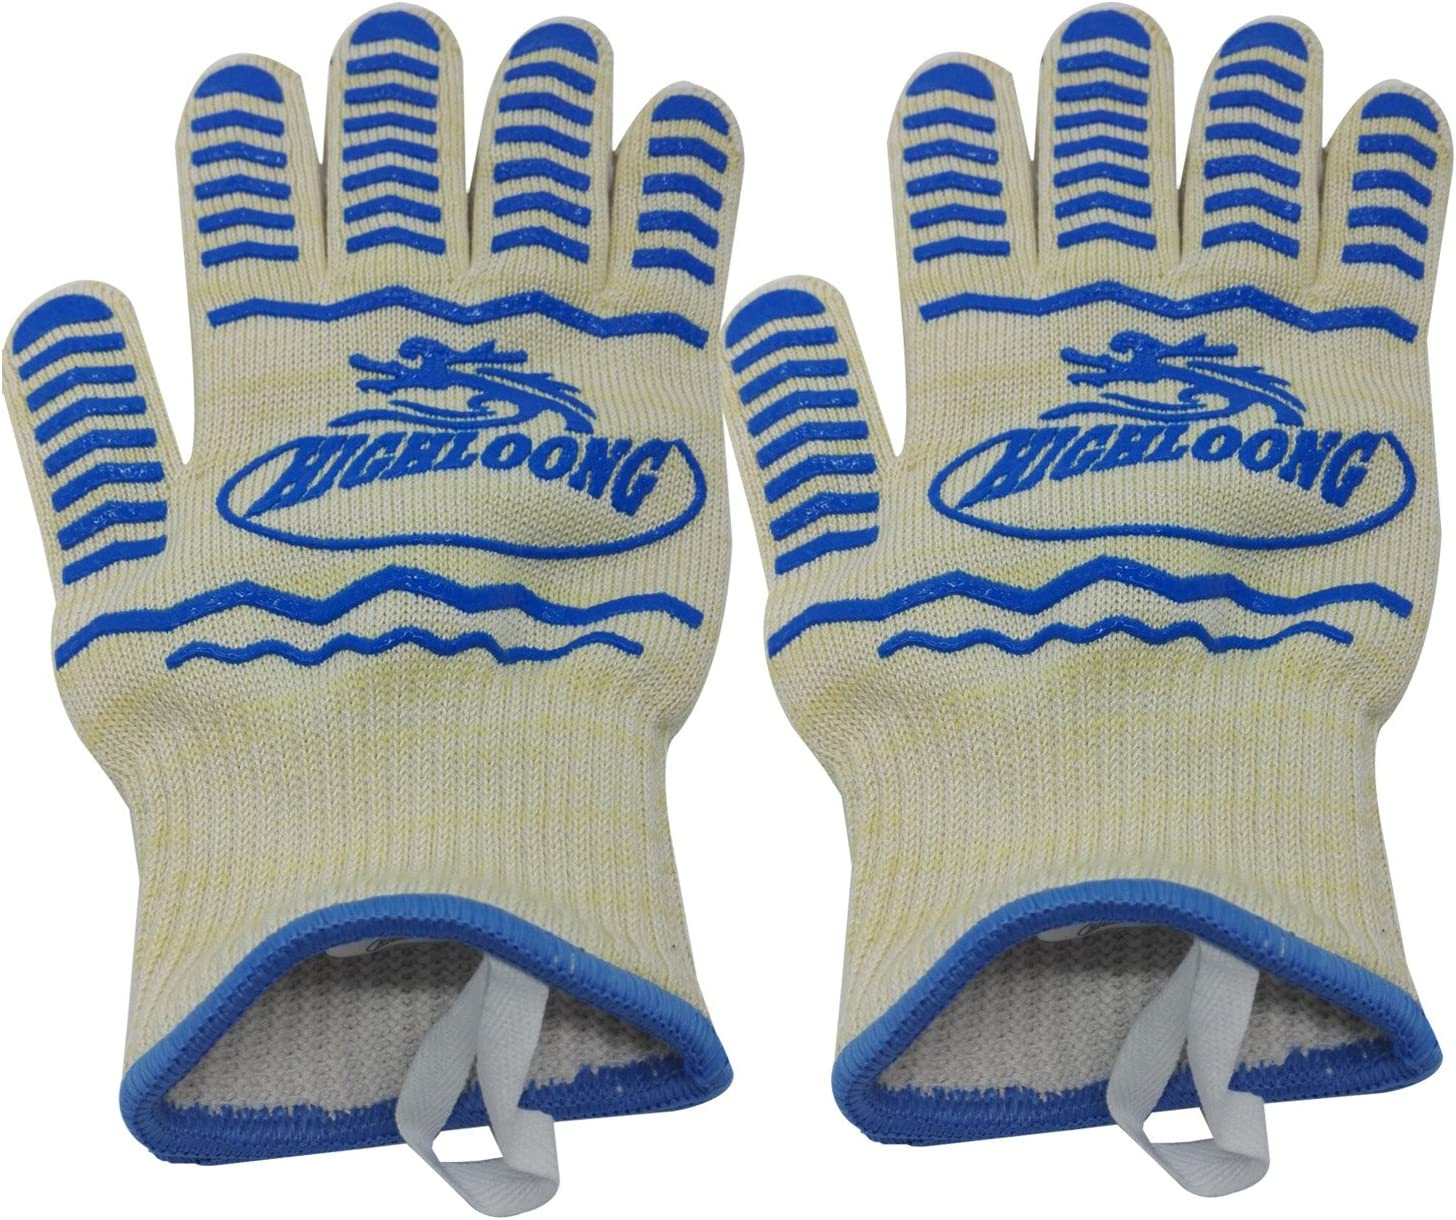 Details about  /1 Pair Gloves Polyester Heat Resistant Kitchen Oven Cooking Flame Glove Washable